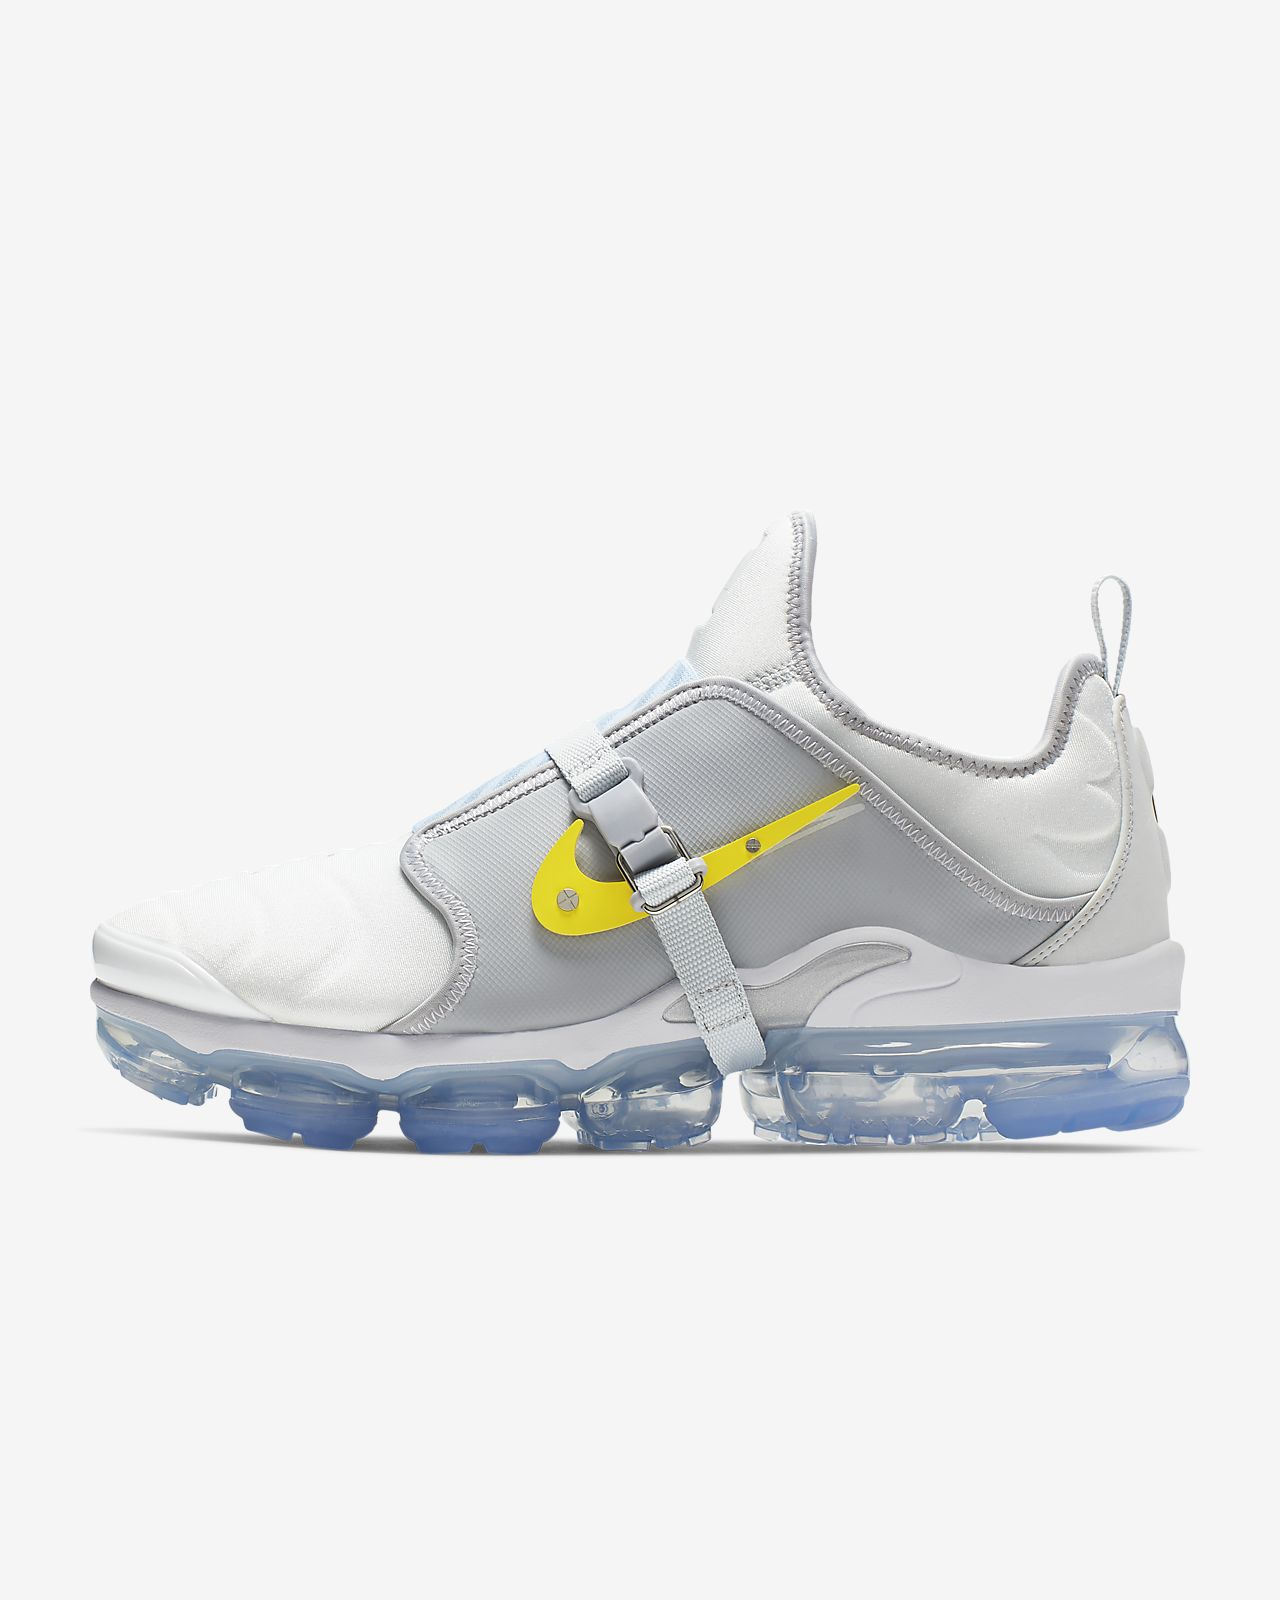 Nike Air VaporMax Plus OA LM 男子运动鞋